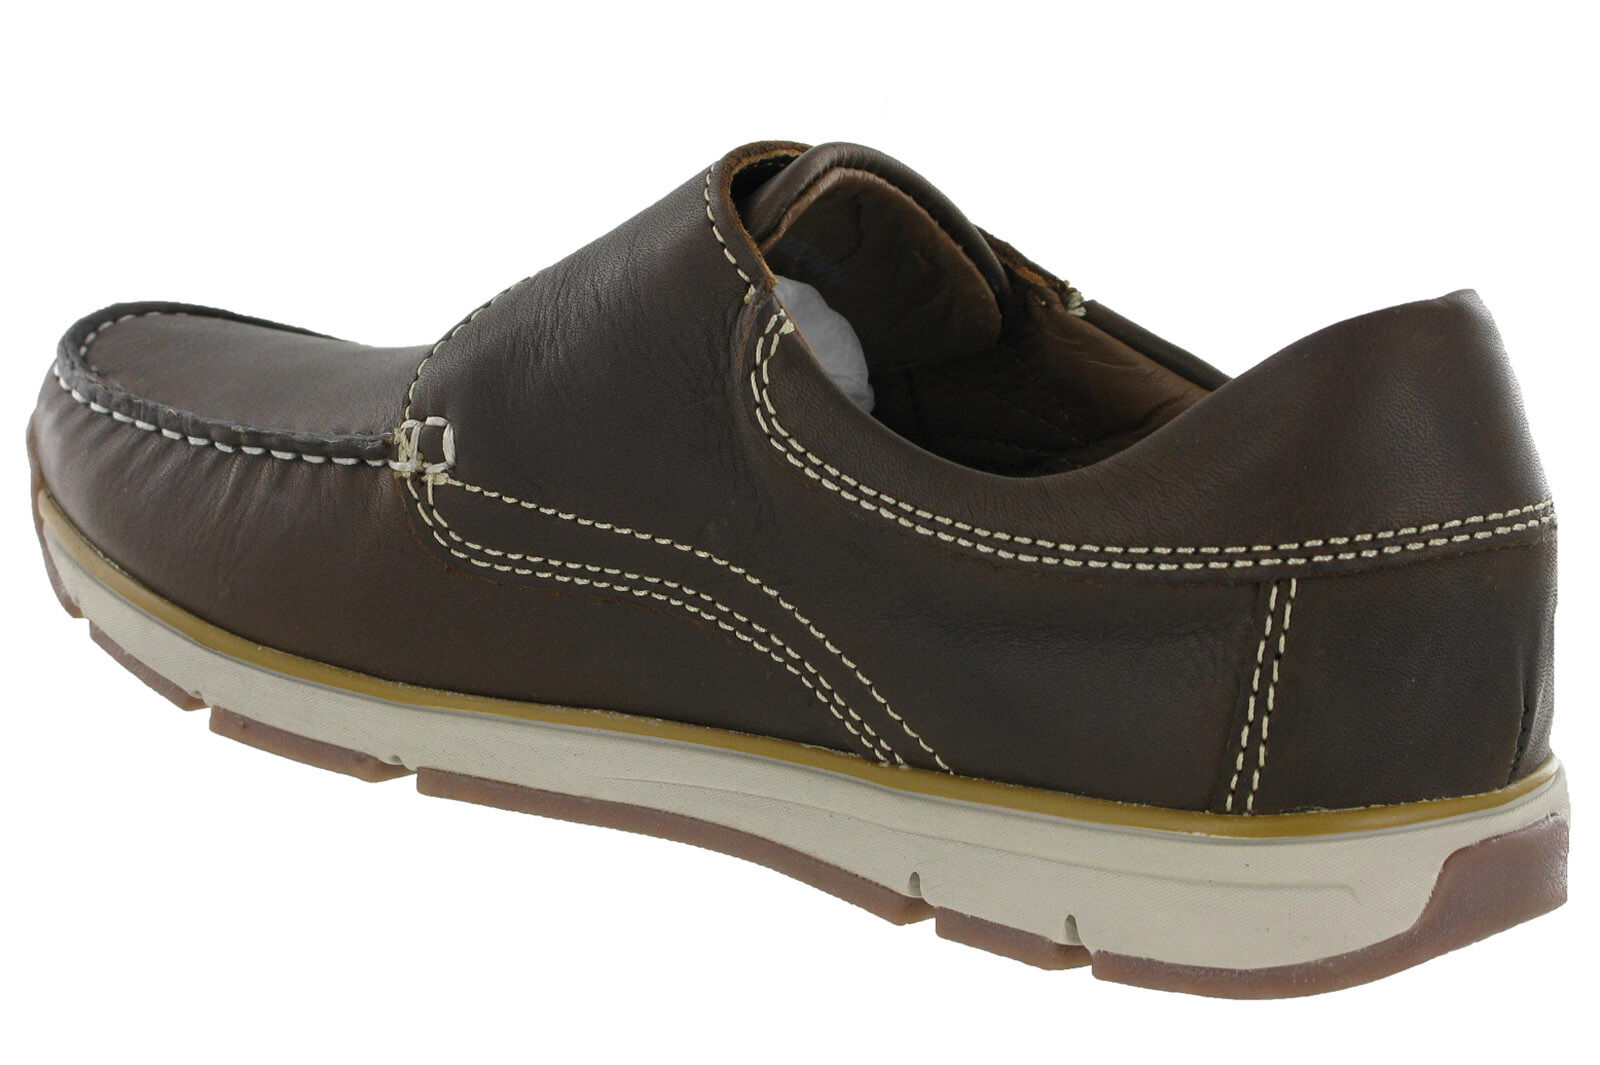 4064675b04908 Roamers Moccasin Boat Shoes Touch Fastening Leather Lined Lightweight Mens